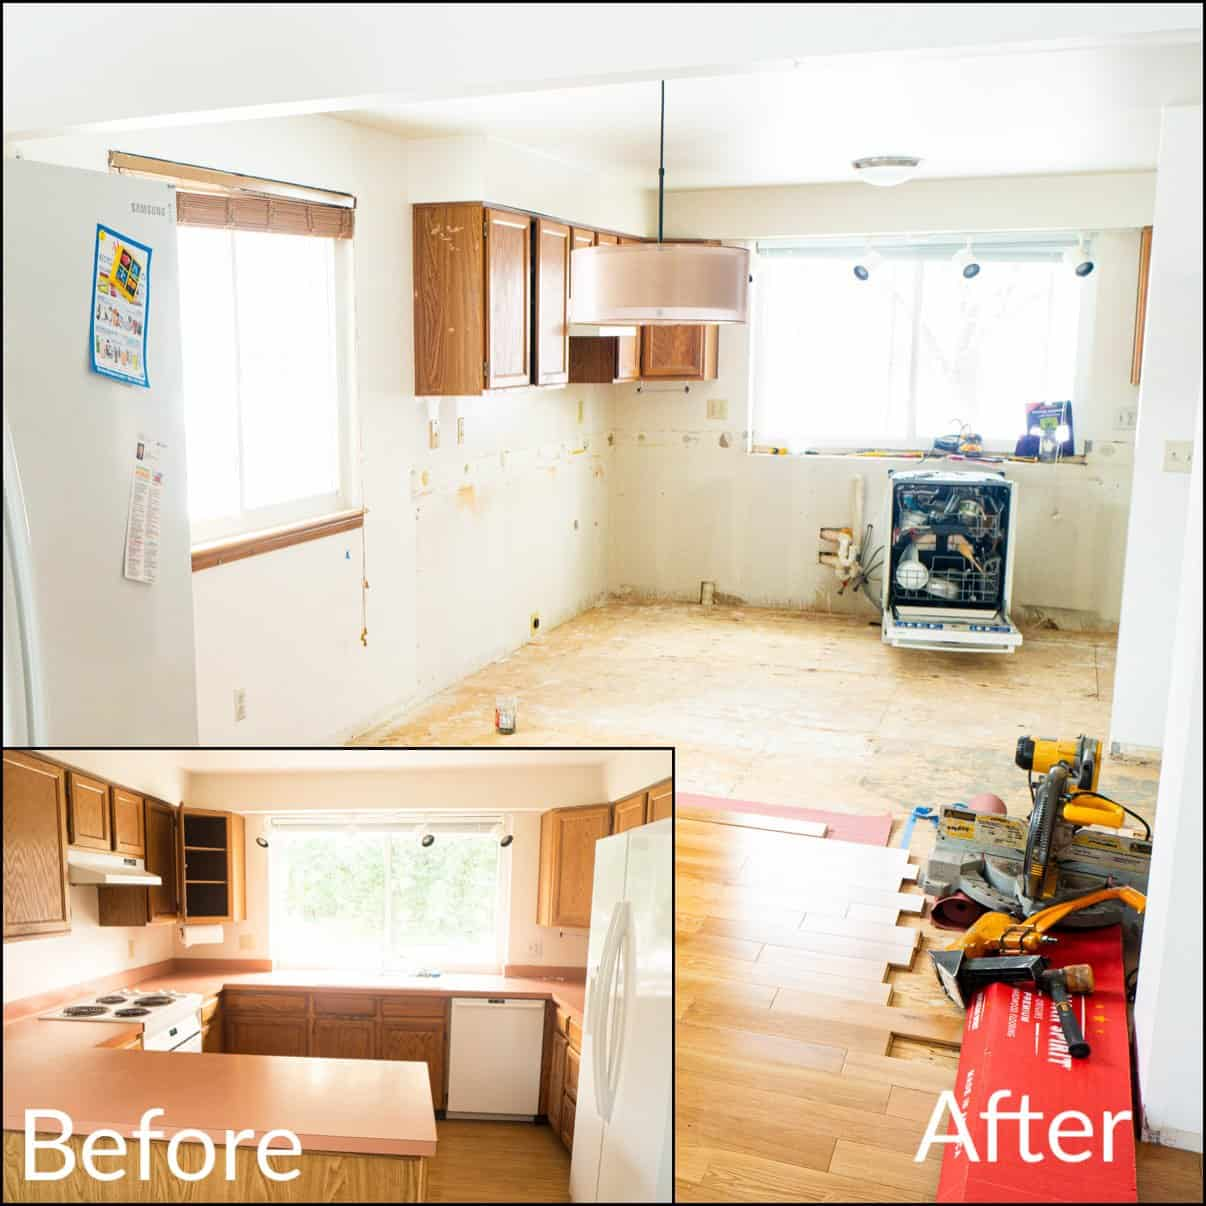 Before and after image of the kitchen demolition